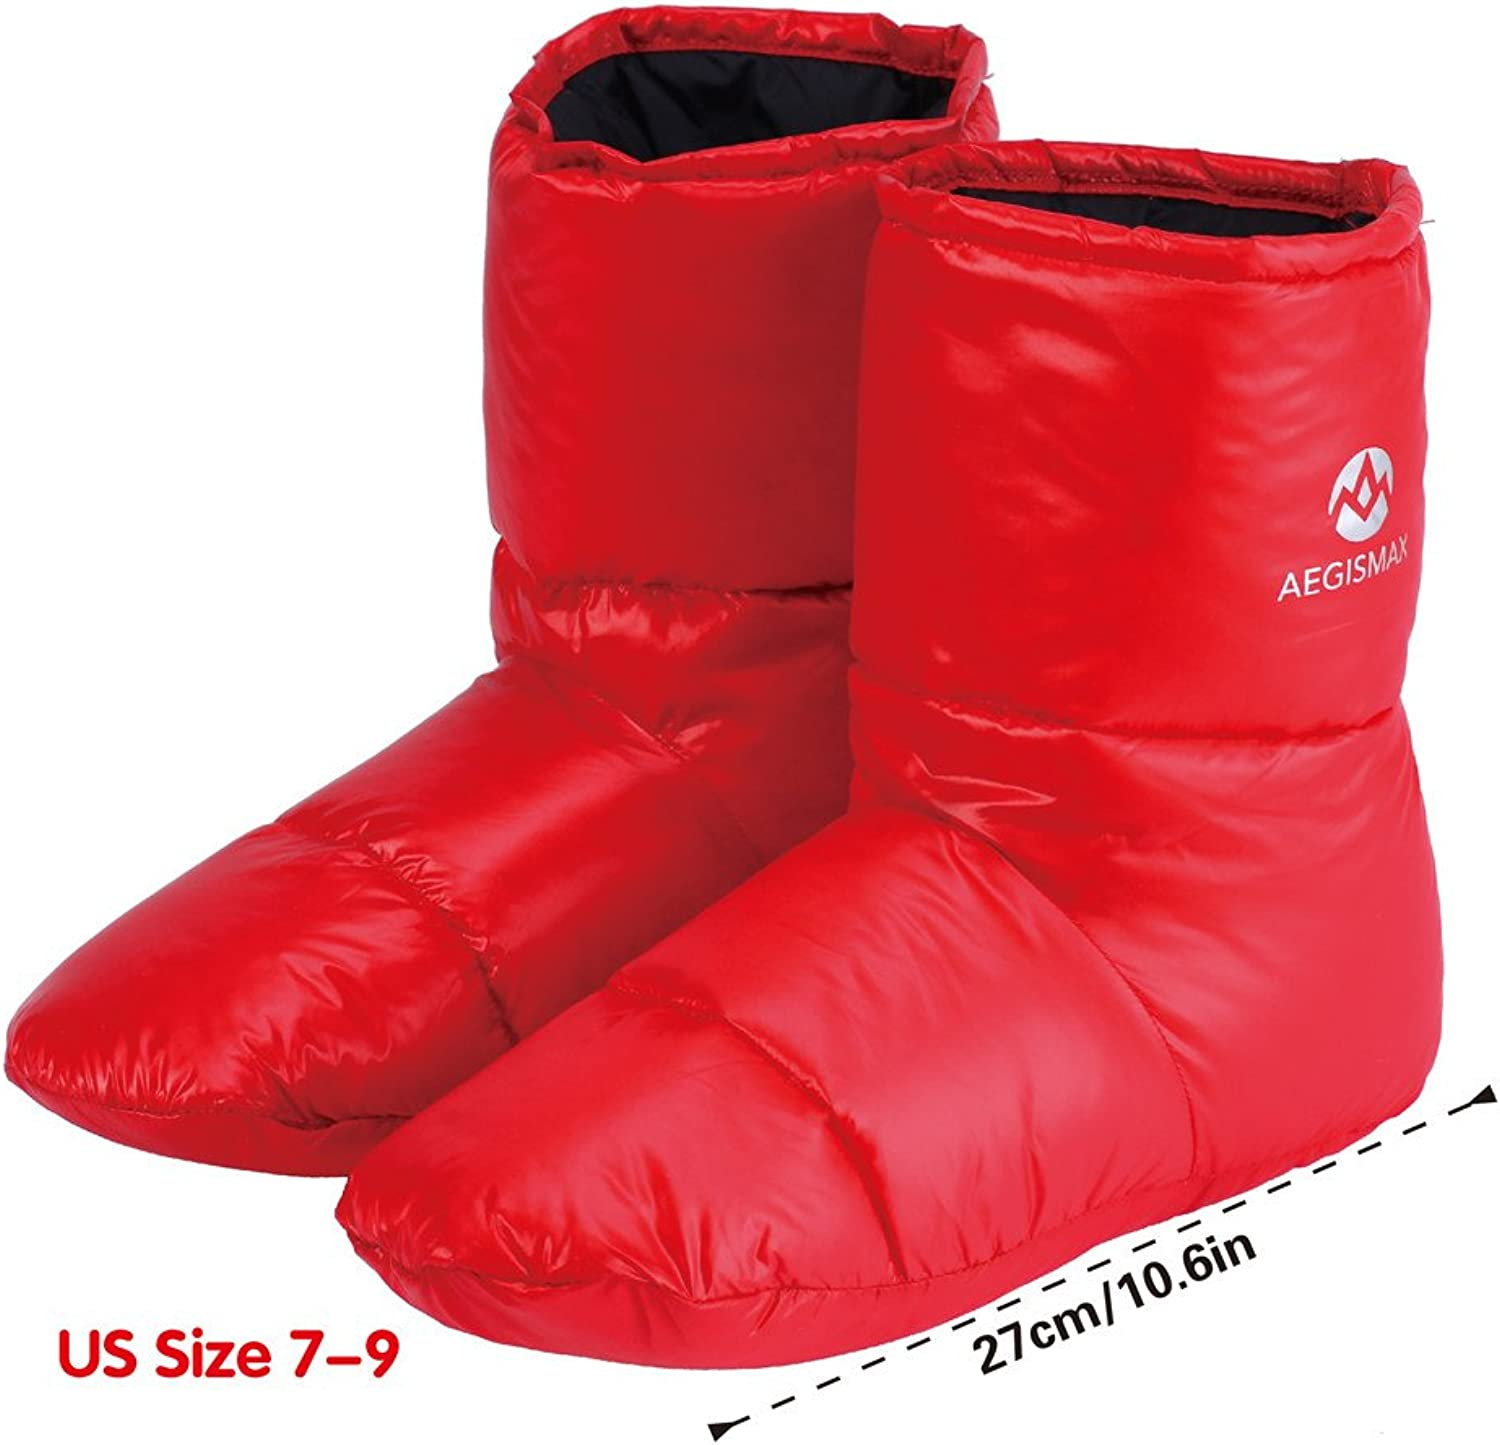 WIND HARD Winter Down Booties Socks Slippers Warm Soft Cozy for Outdoor Camping Sleeping Bag Indoor Down Filled Slipper Boots Ultralight 3 Size for Men Women